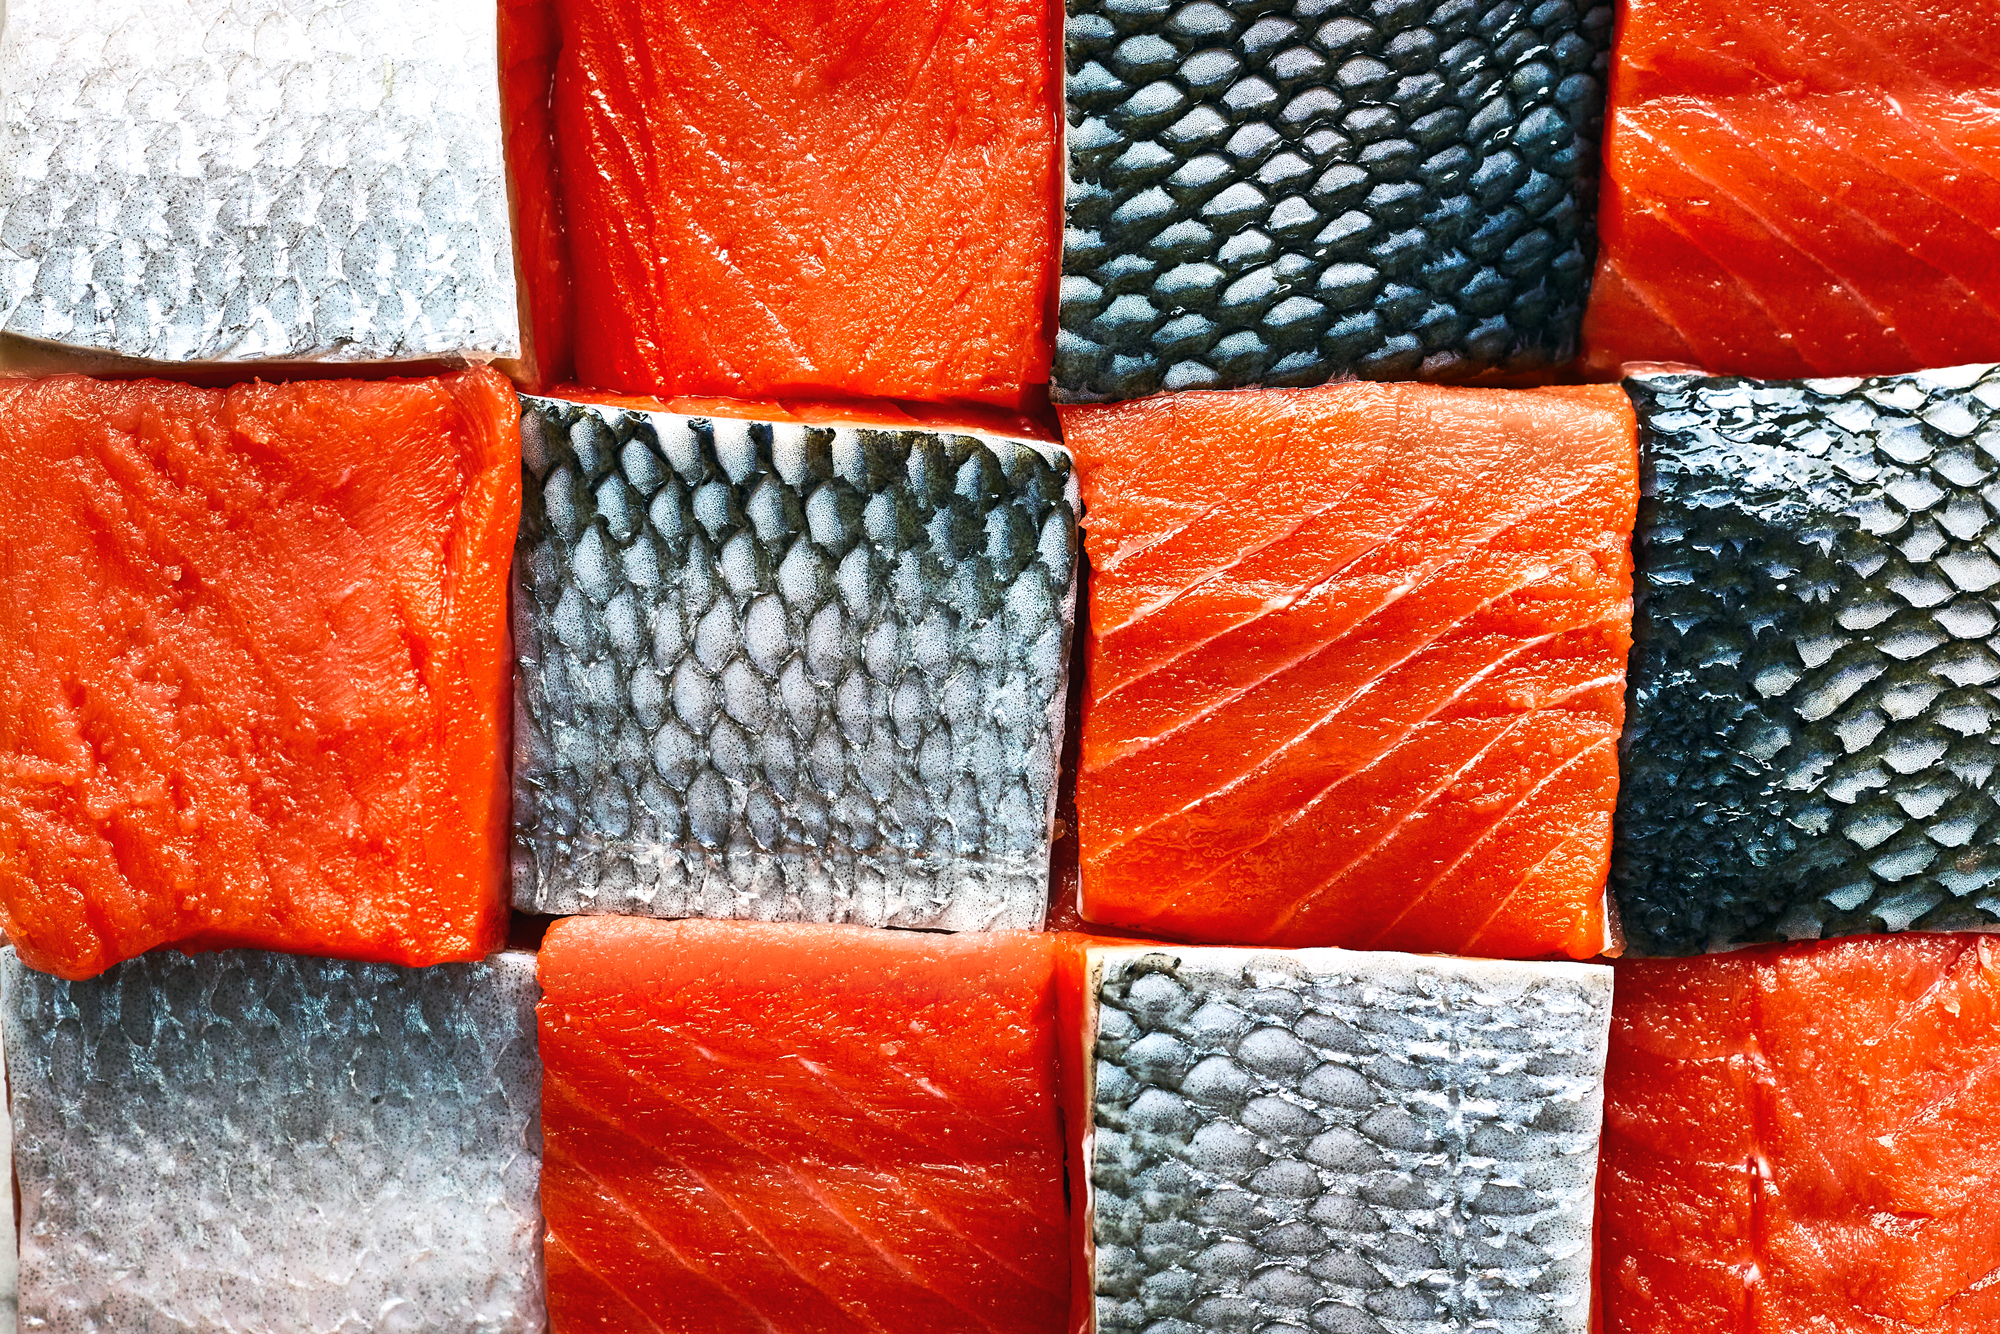 Guide to Salmon Cuts